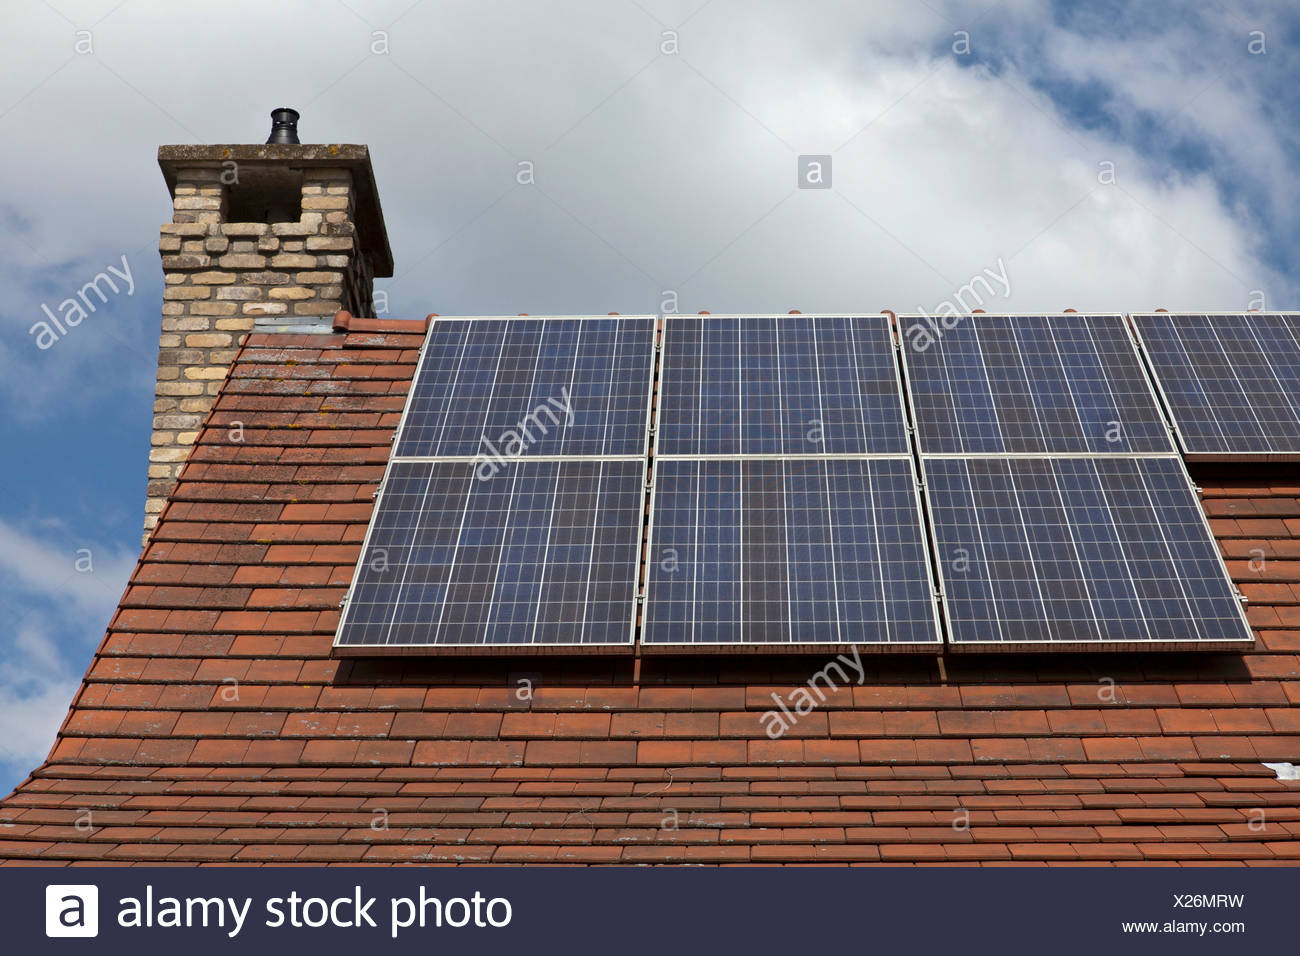 Close up of house roof with solar panels - Stock Image